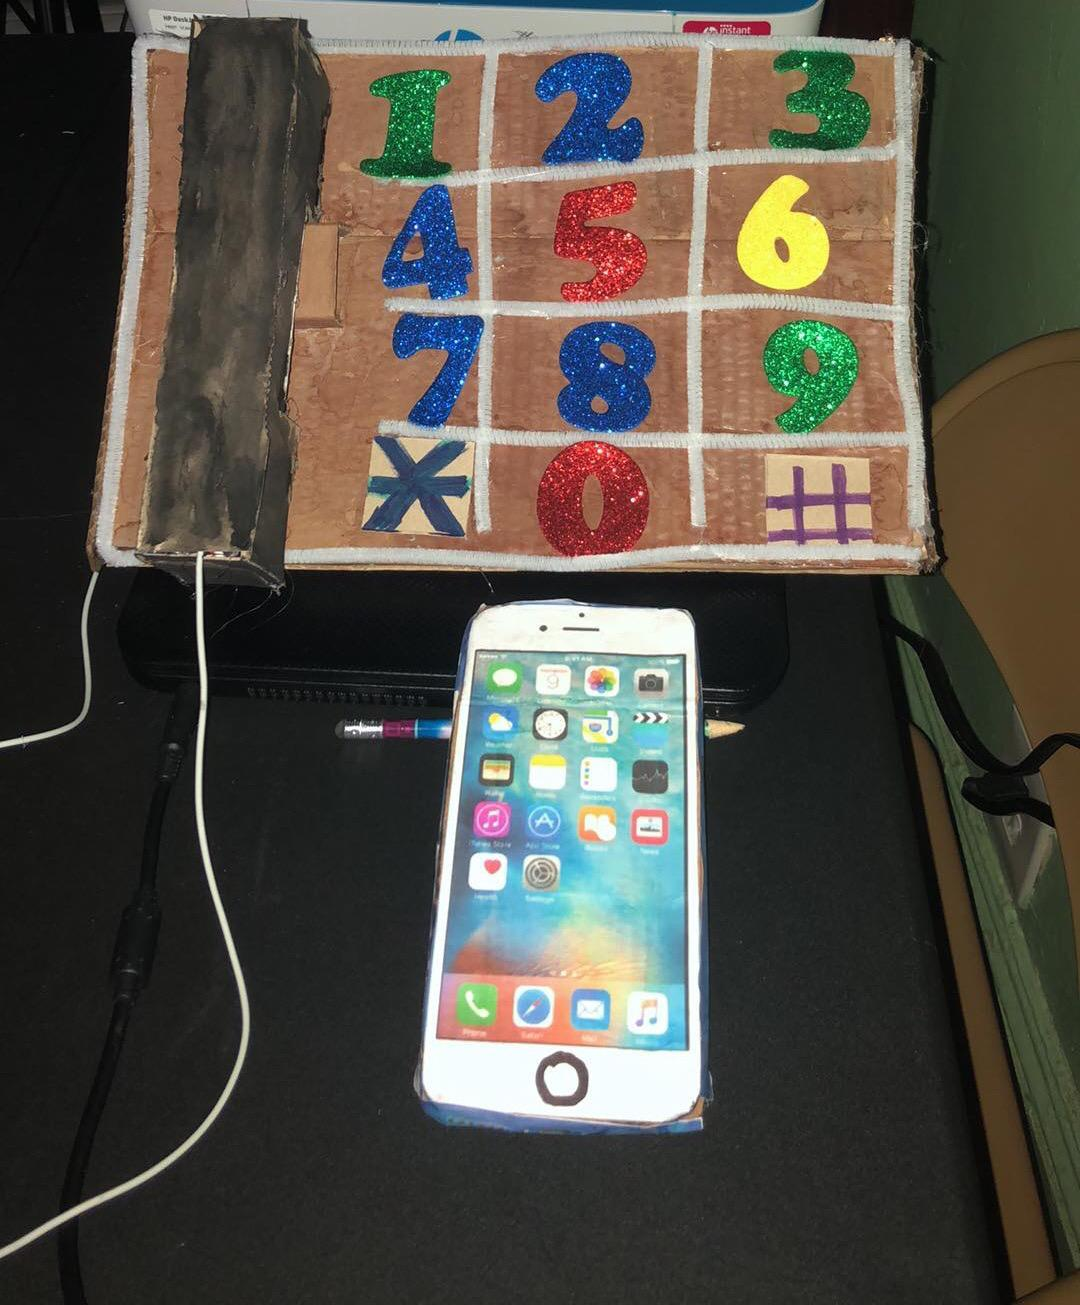 cardboard wall phone next to cell phone